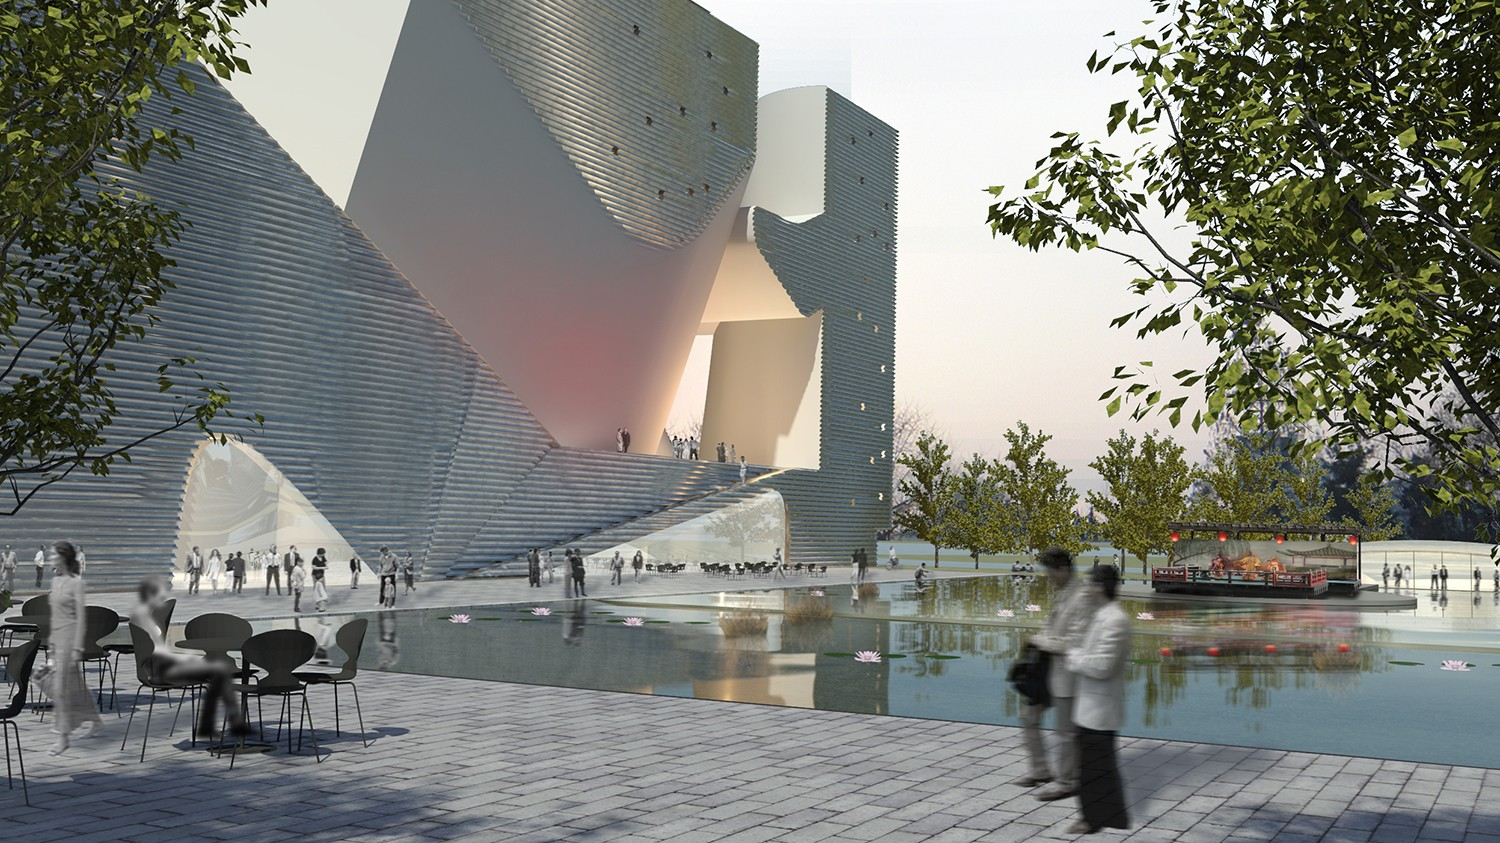 https://s3.us-east-2.amazonaws.com/steven-holl/uploads/projects/project-images/StevenHollArchitects_Tianjin_TianjinView01_WH.jpg